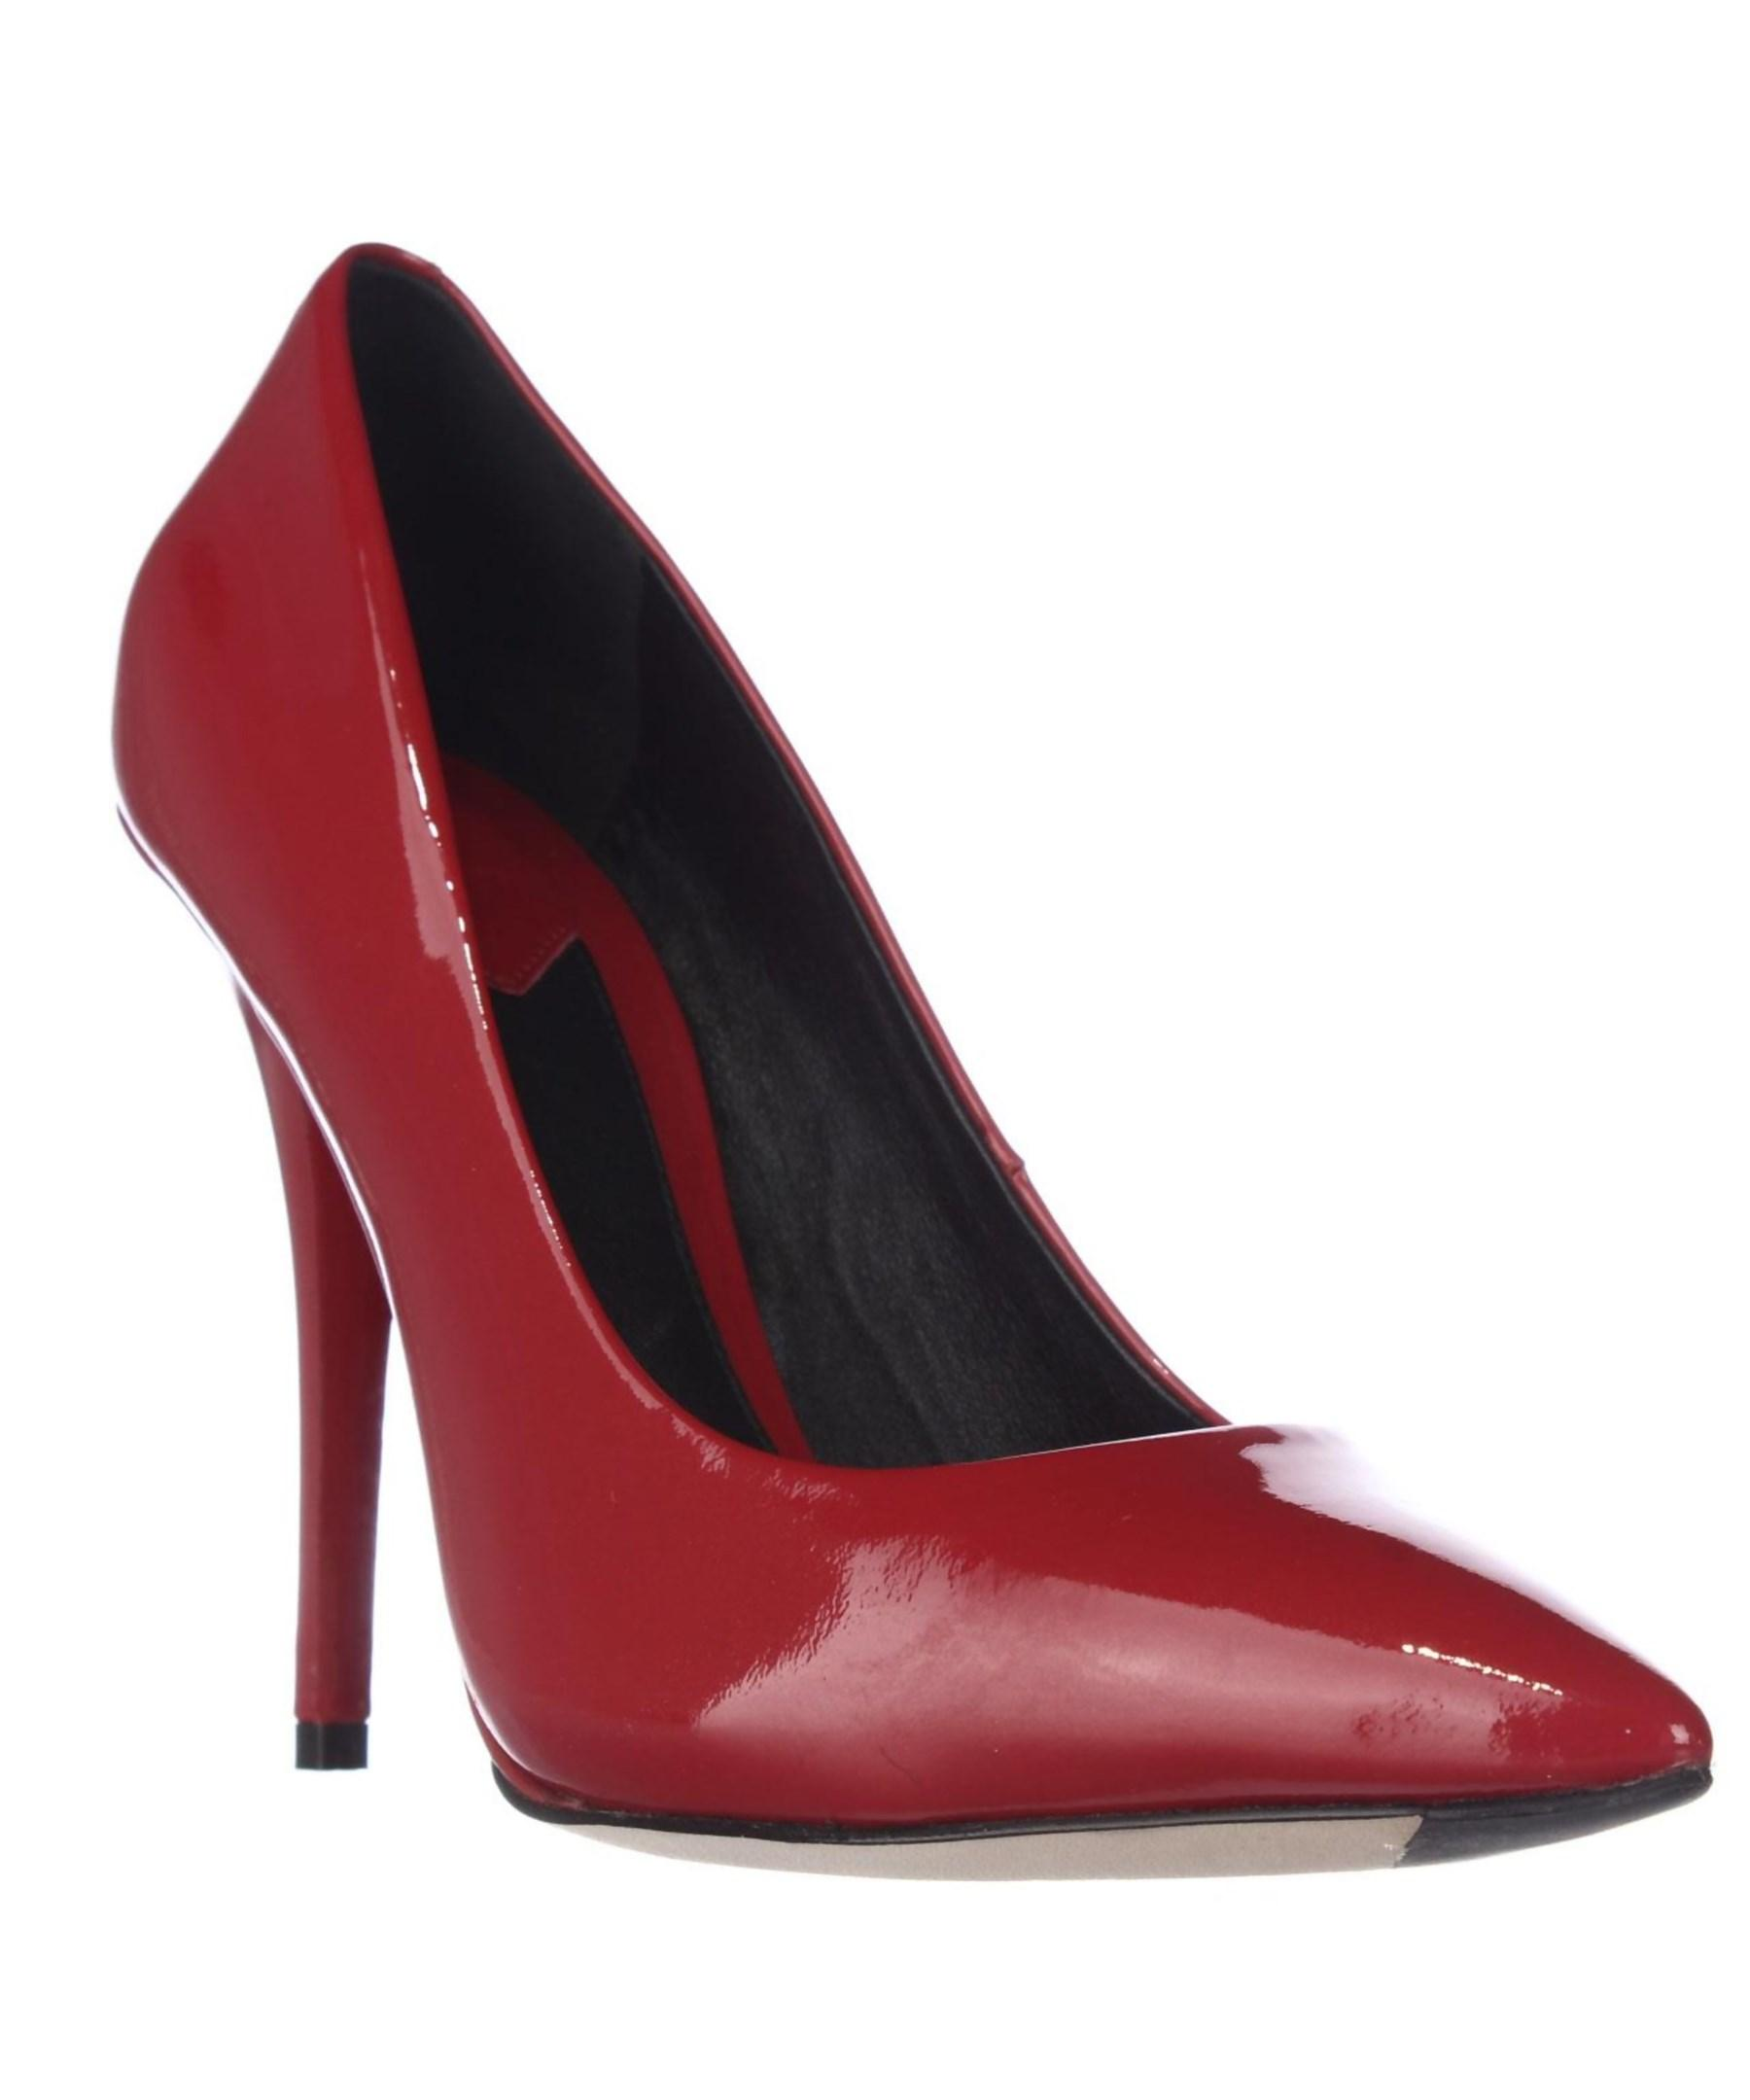 Where To Buy Brian Atwood Shoes